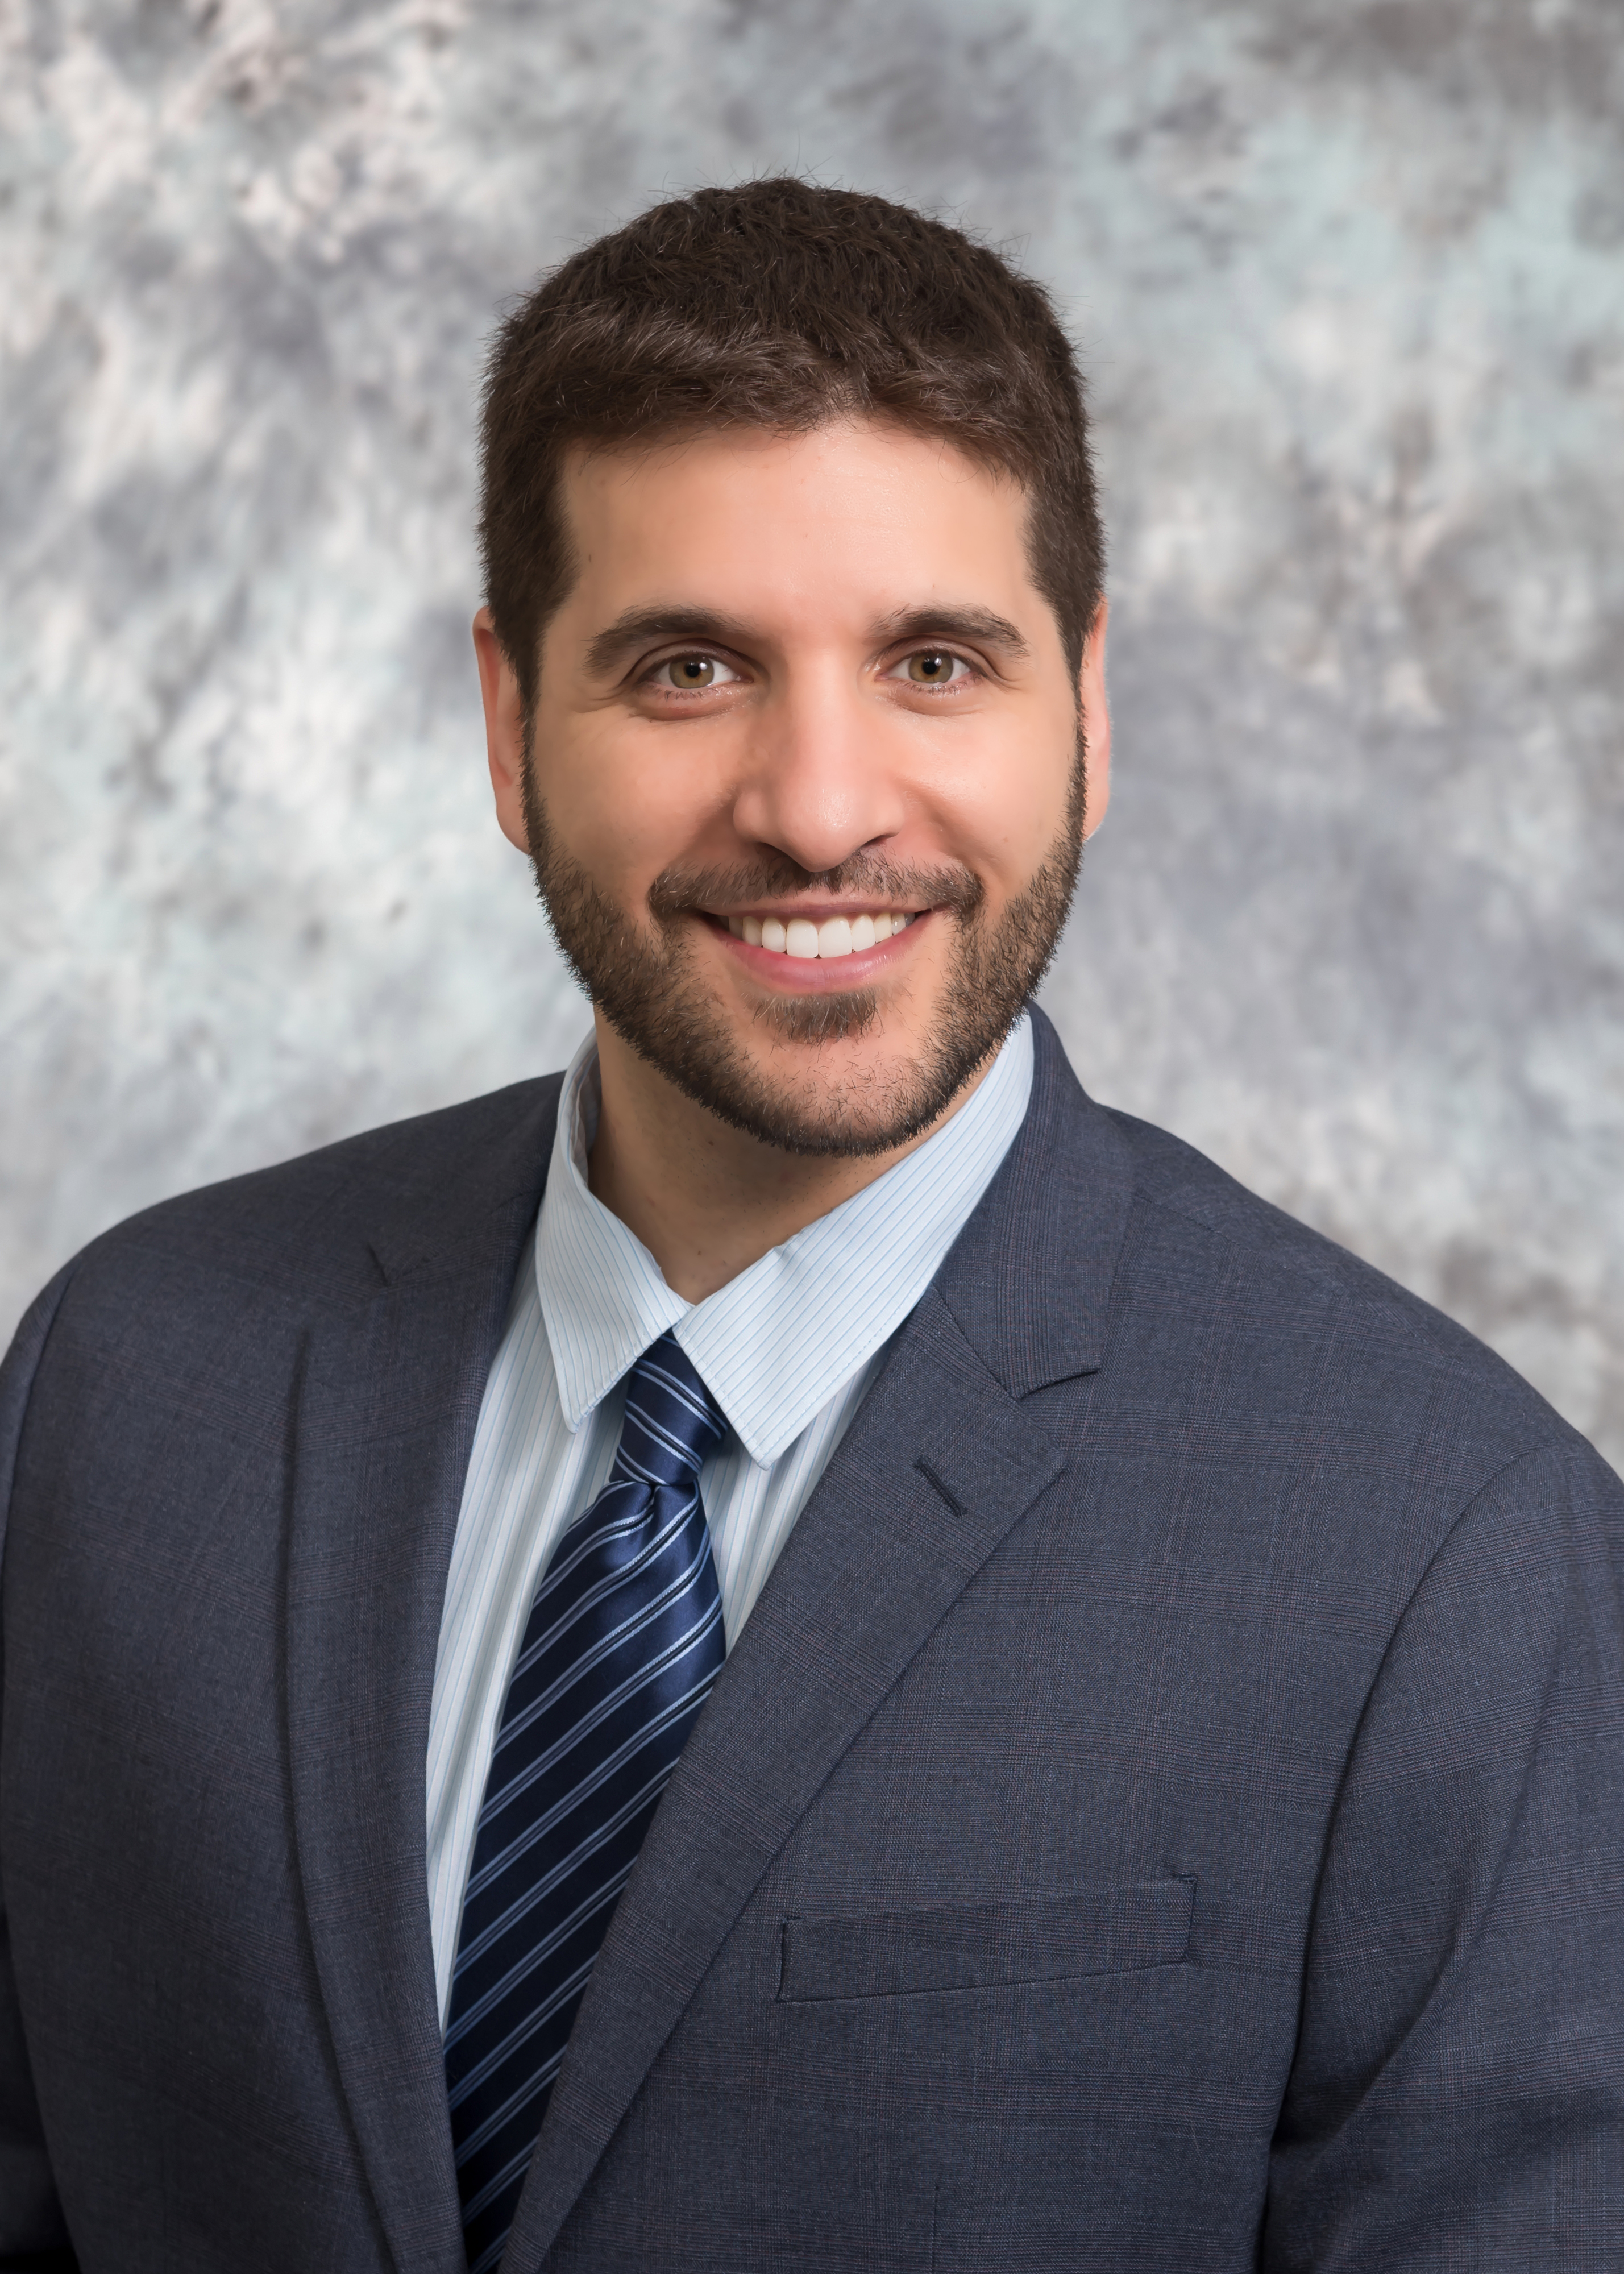 Dr. Joey DiStefano